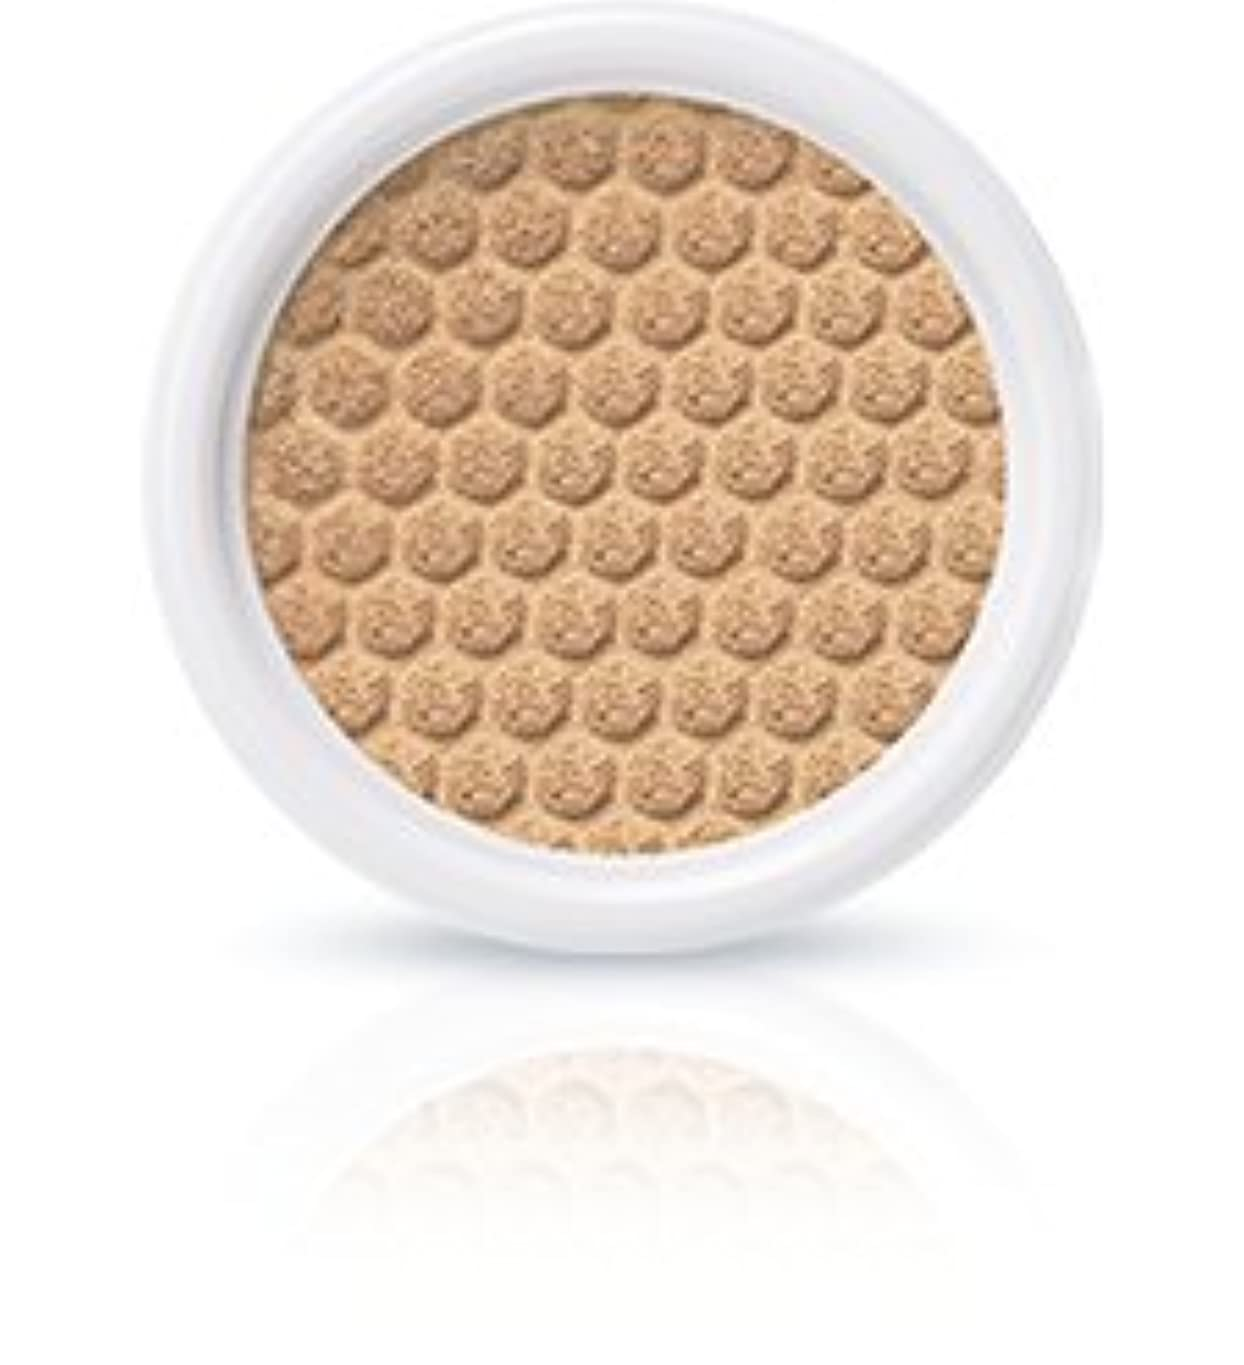 [2017 All New] IOPE Air Cushion * Natural * [Refill] 15g/アイオペ エア クッション * ナチュラル * [リフィル] 15g (#23 Beige) [並行輸入品]